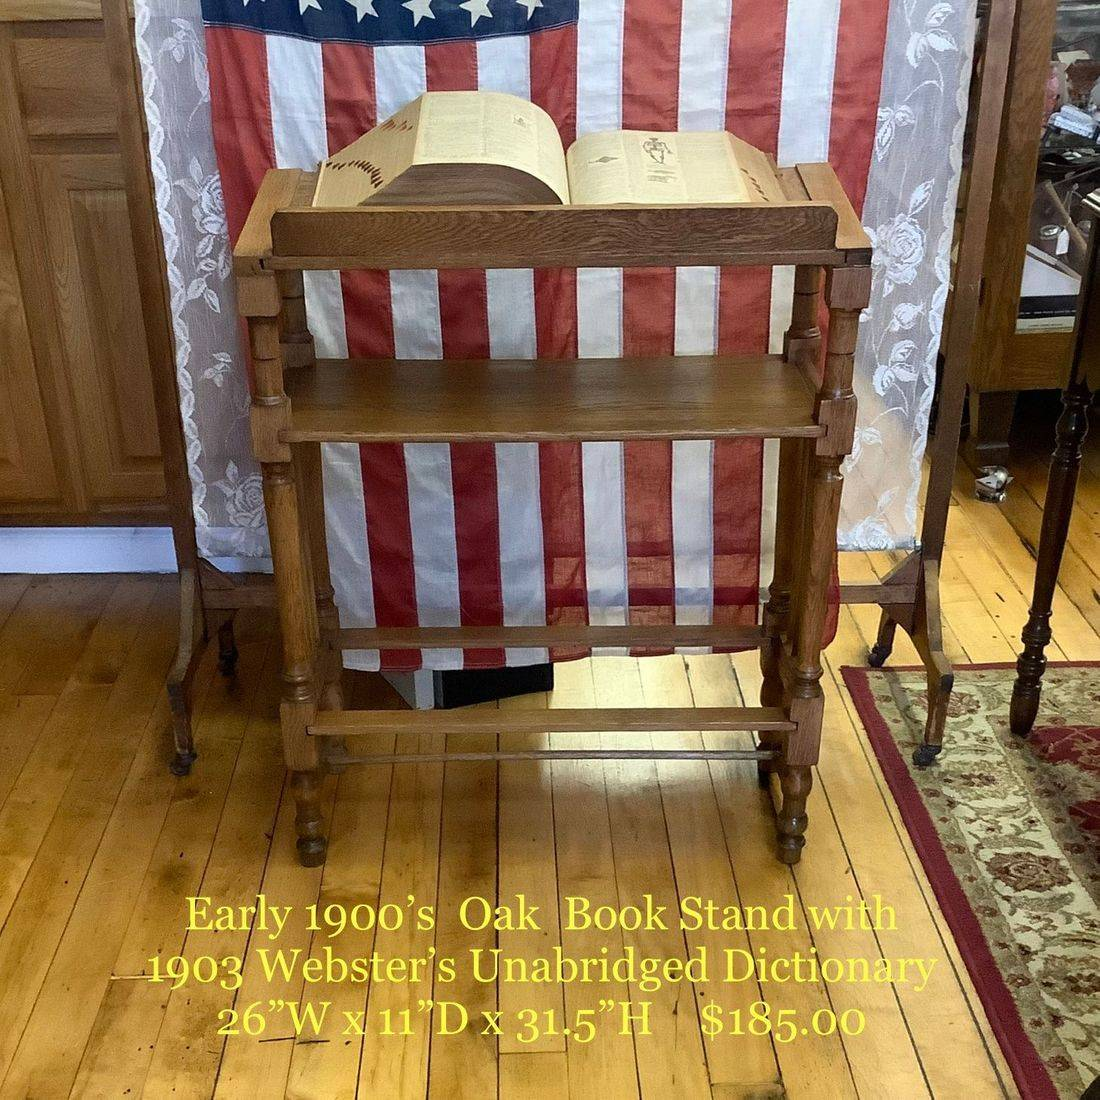 Early 1900's Oak Book Stand w/1903 Webster's Unabridged Dictionary   $185.00